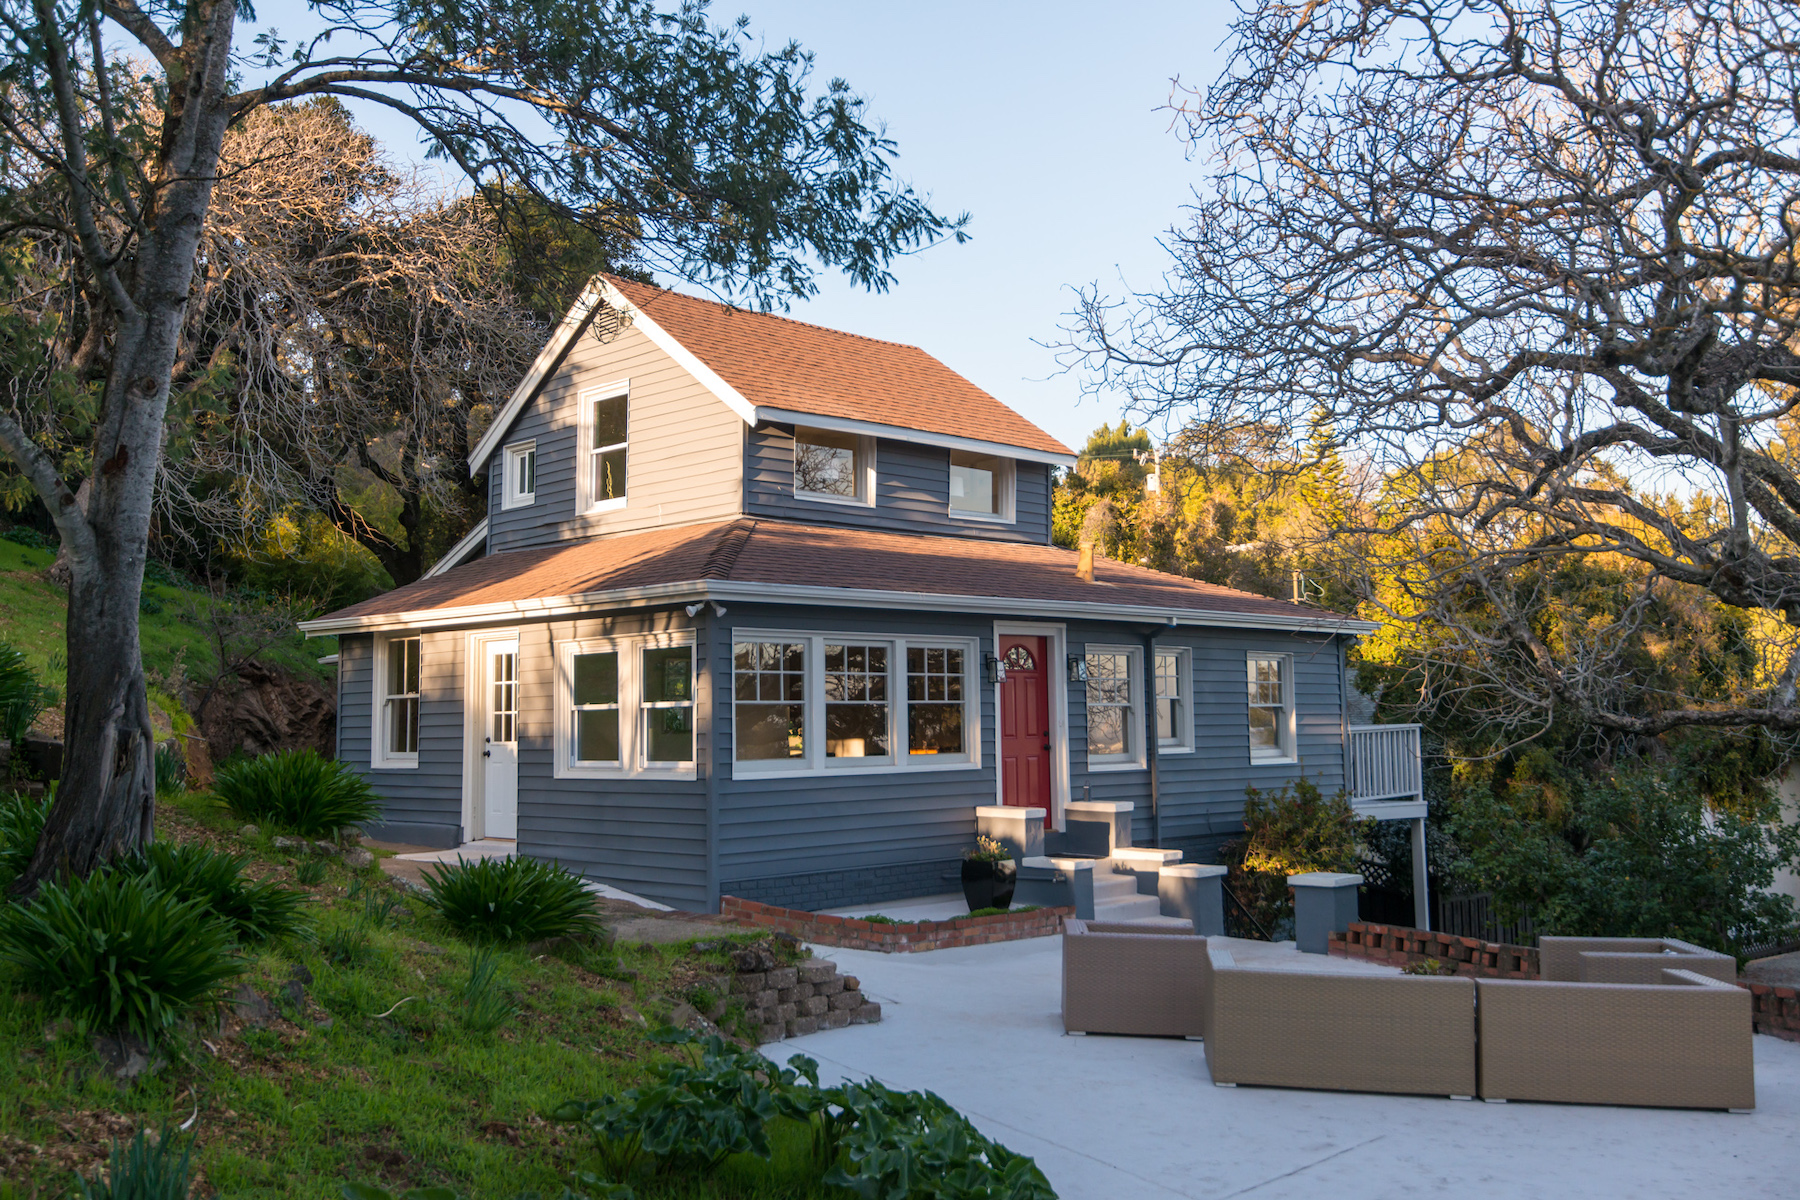 Single Family Home for Active at Hilltop Haven 950 Holly Road Belmont, California 94002 United States